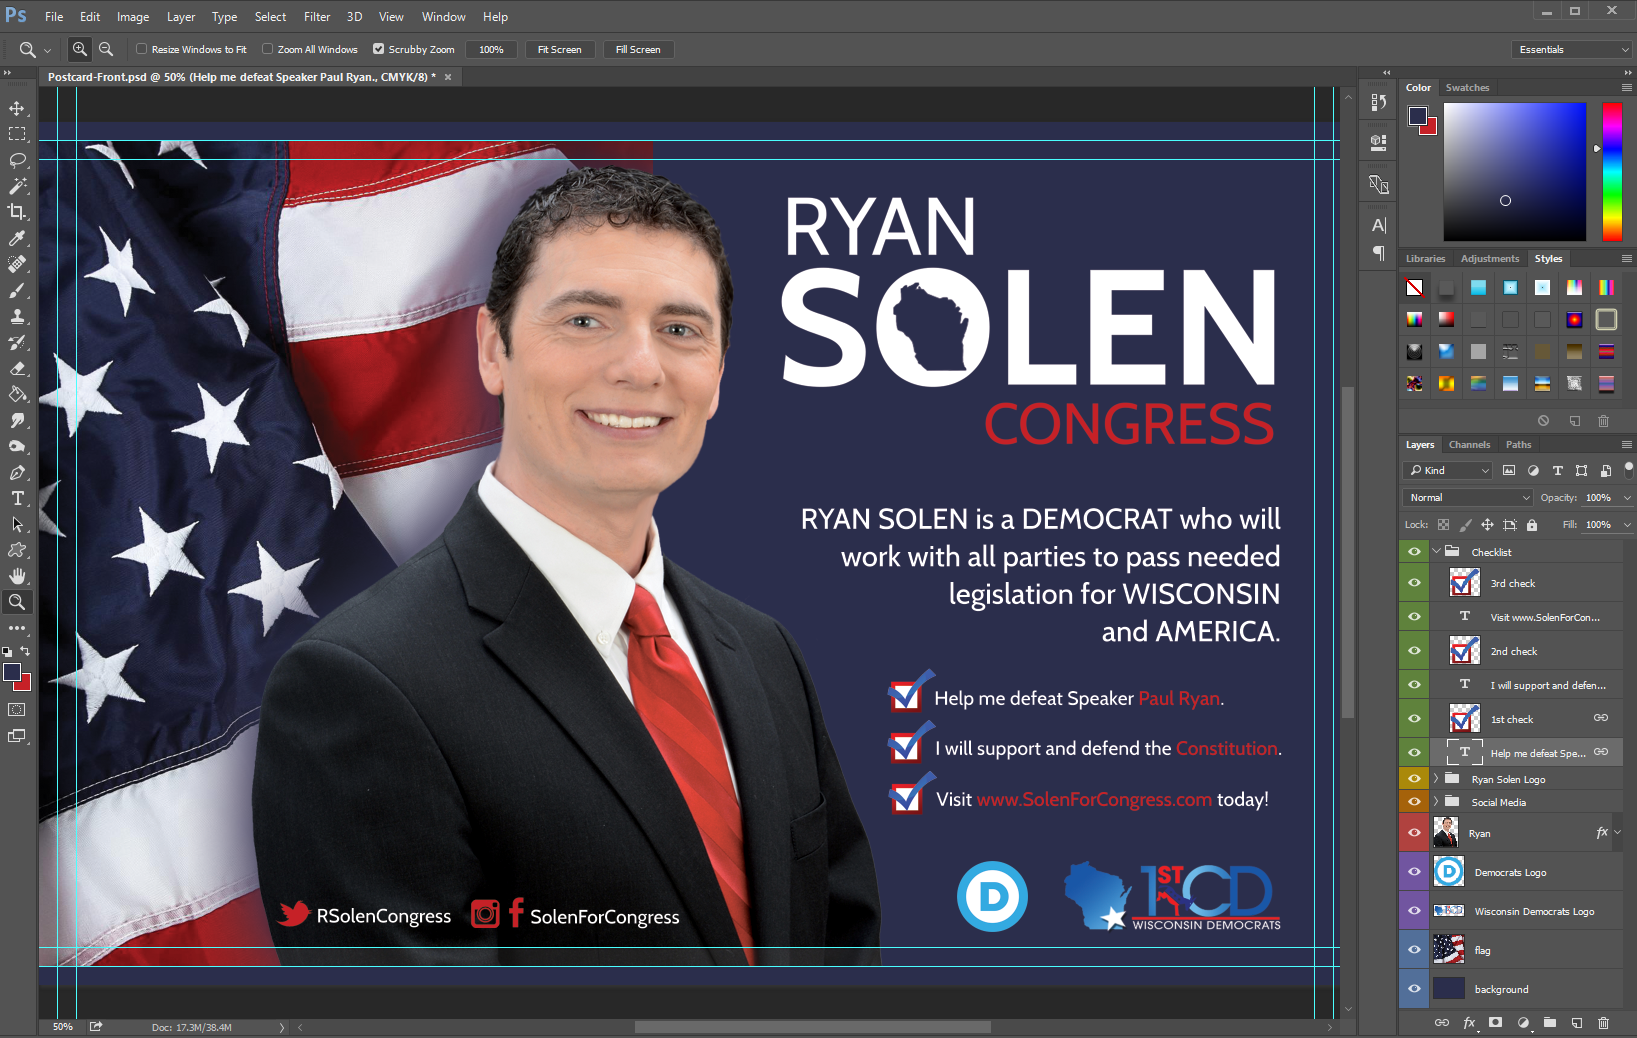 Layered PSD (Photoshop) file for Ryan's use